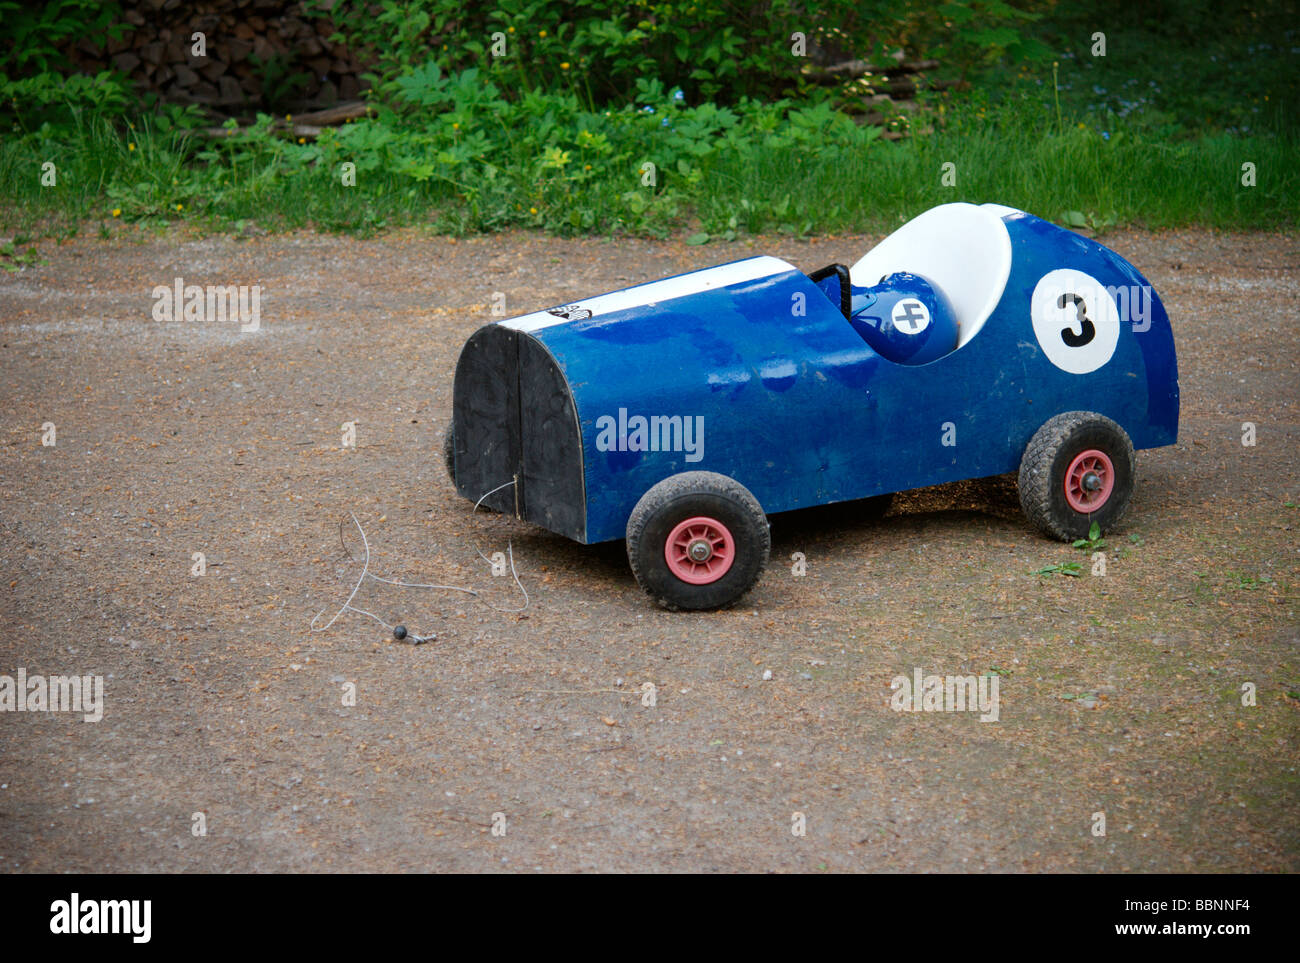 how to build a soap box car